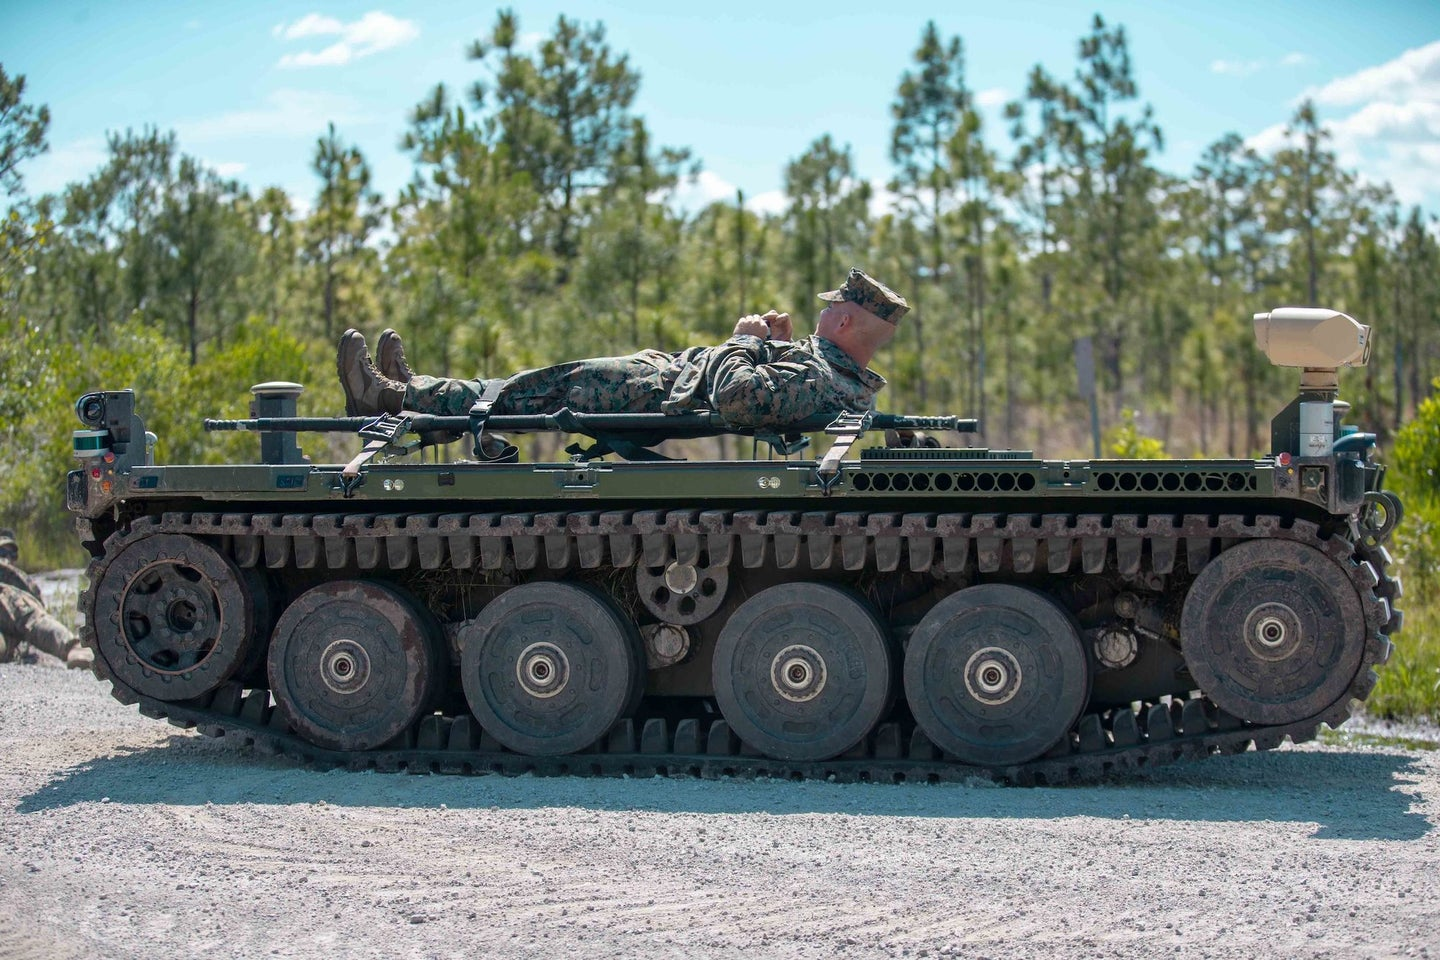 A Marine lies on top of a robotic vehicle on treads.